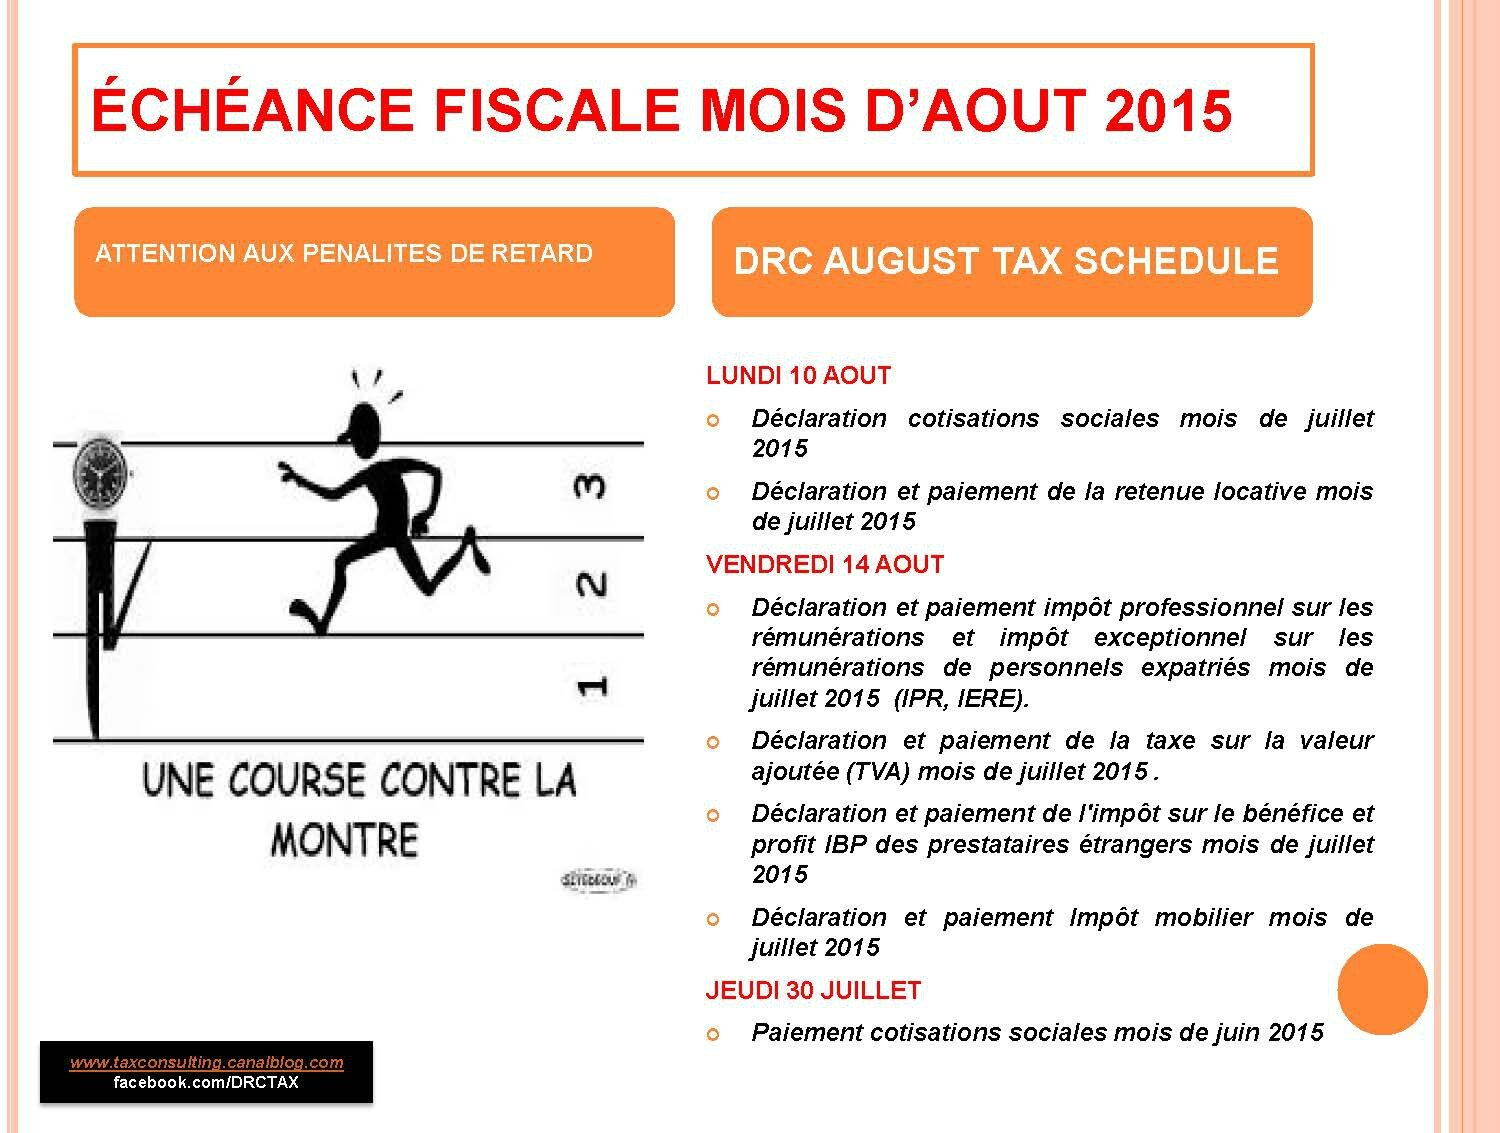 CALENDRIER FISCAL MOIS D'AOUT / AUGUST TAX SCHEDULE